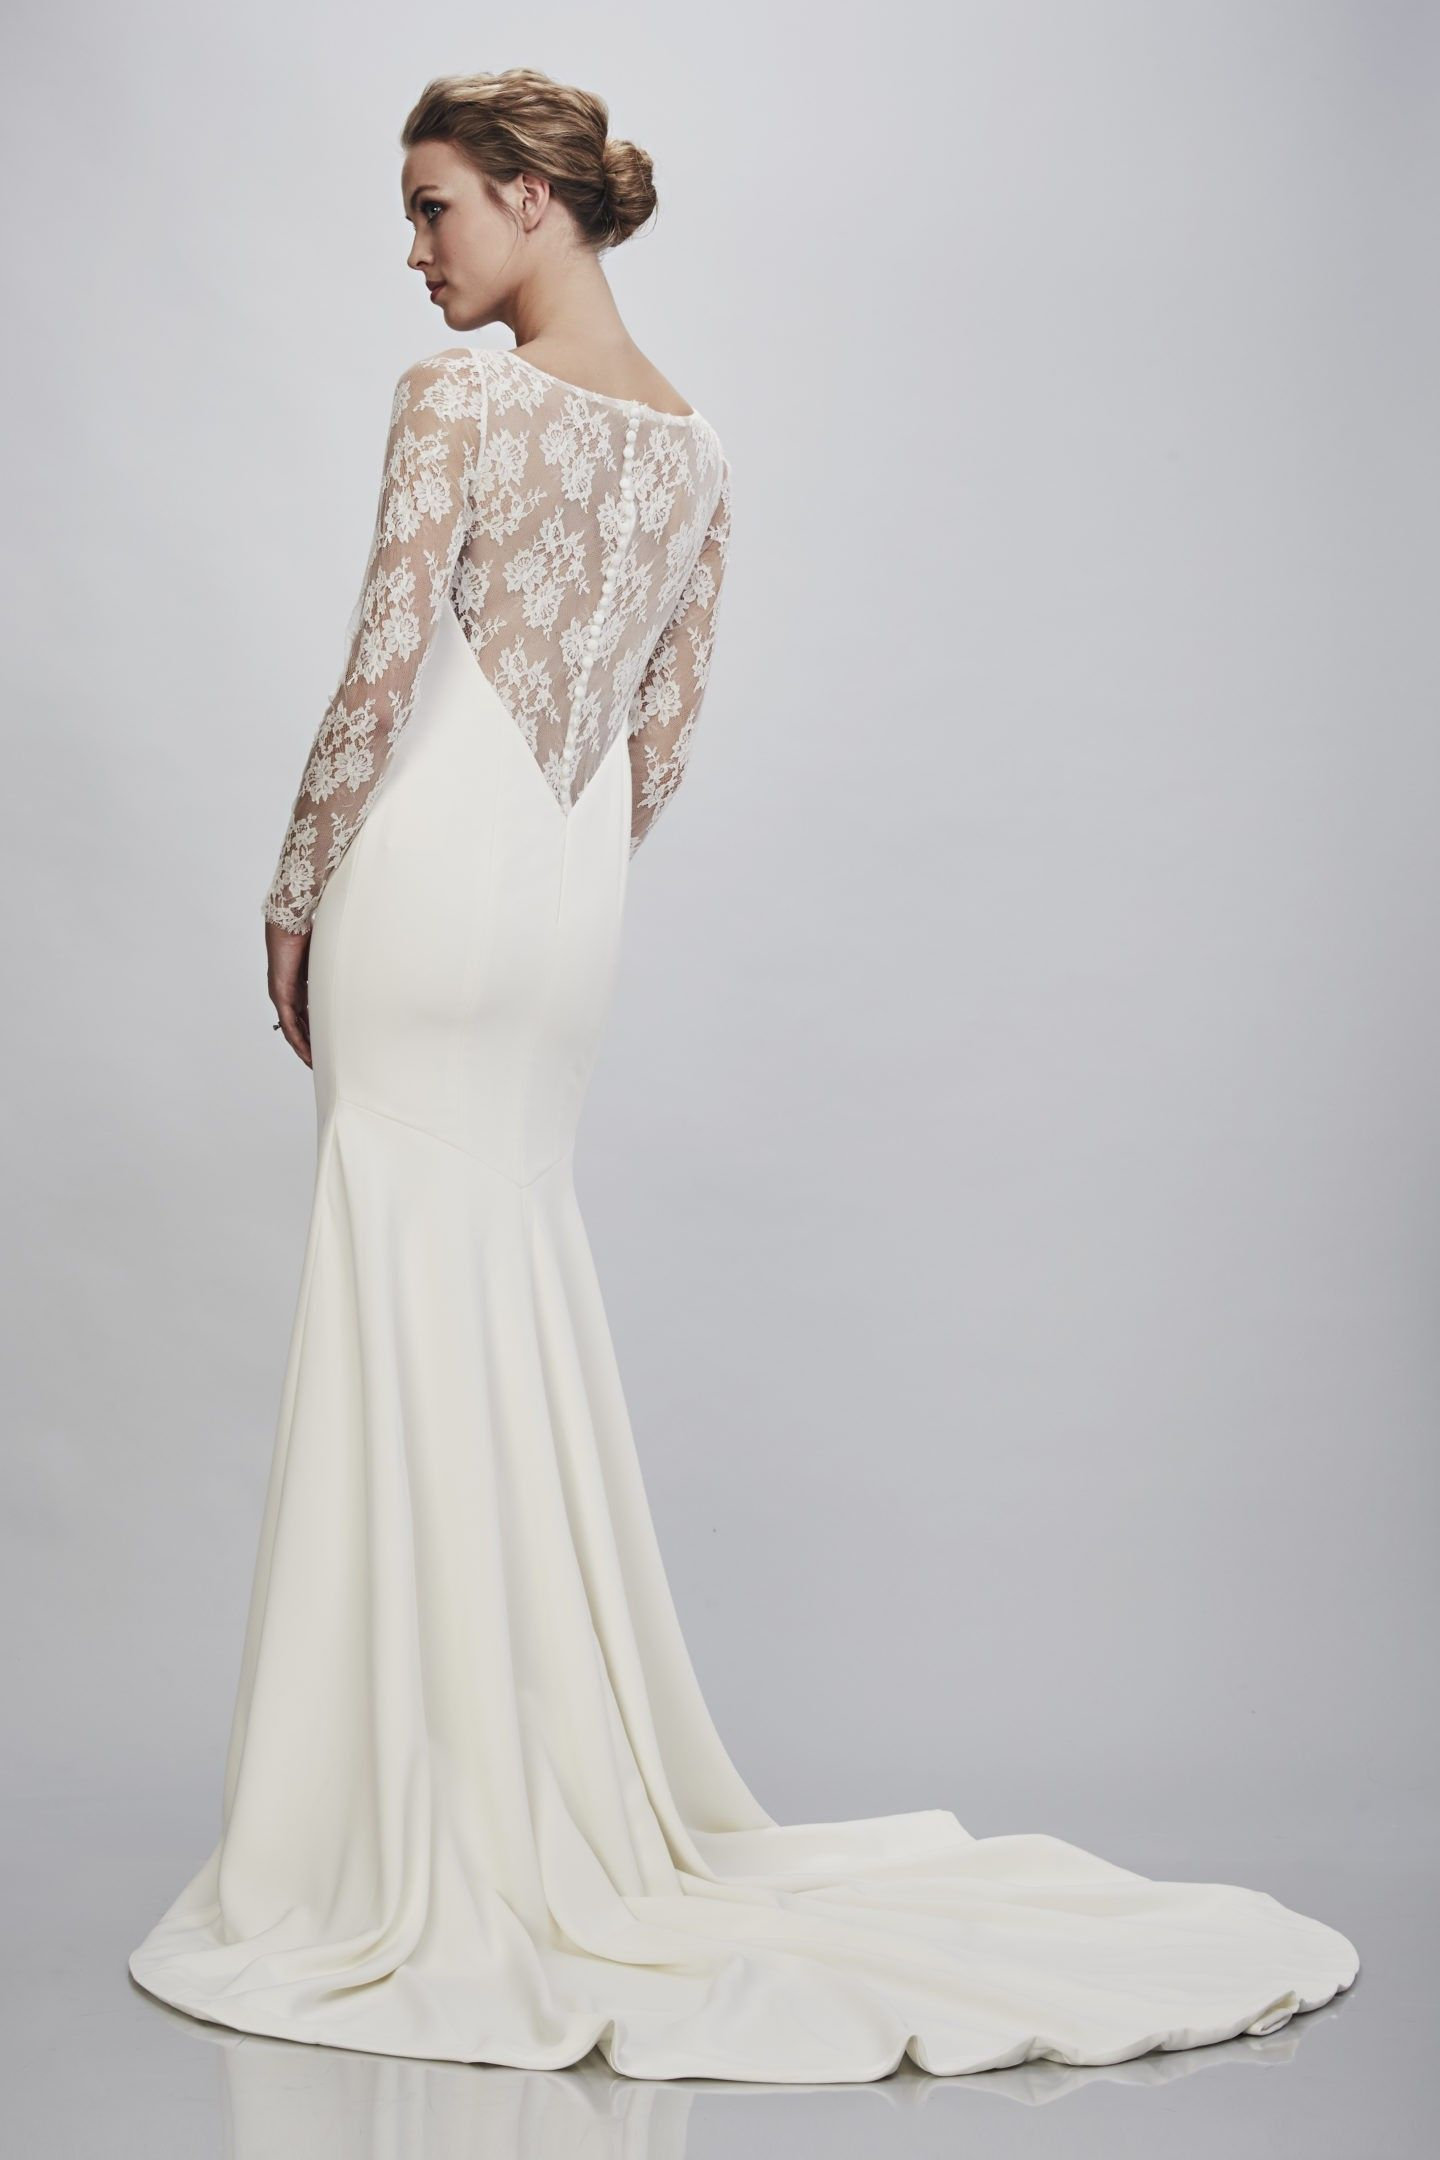 Lauren by Theia available at LVD Bridal Nashville and New